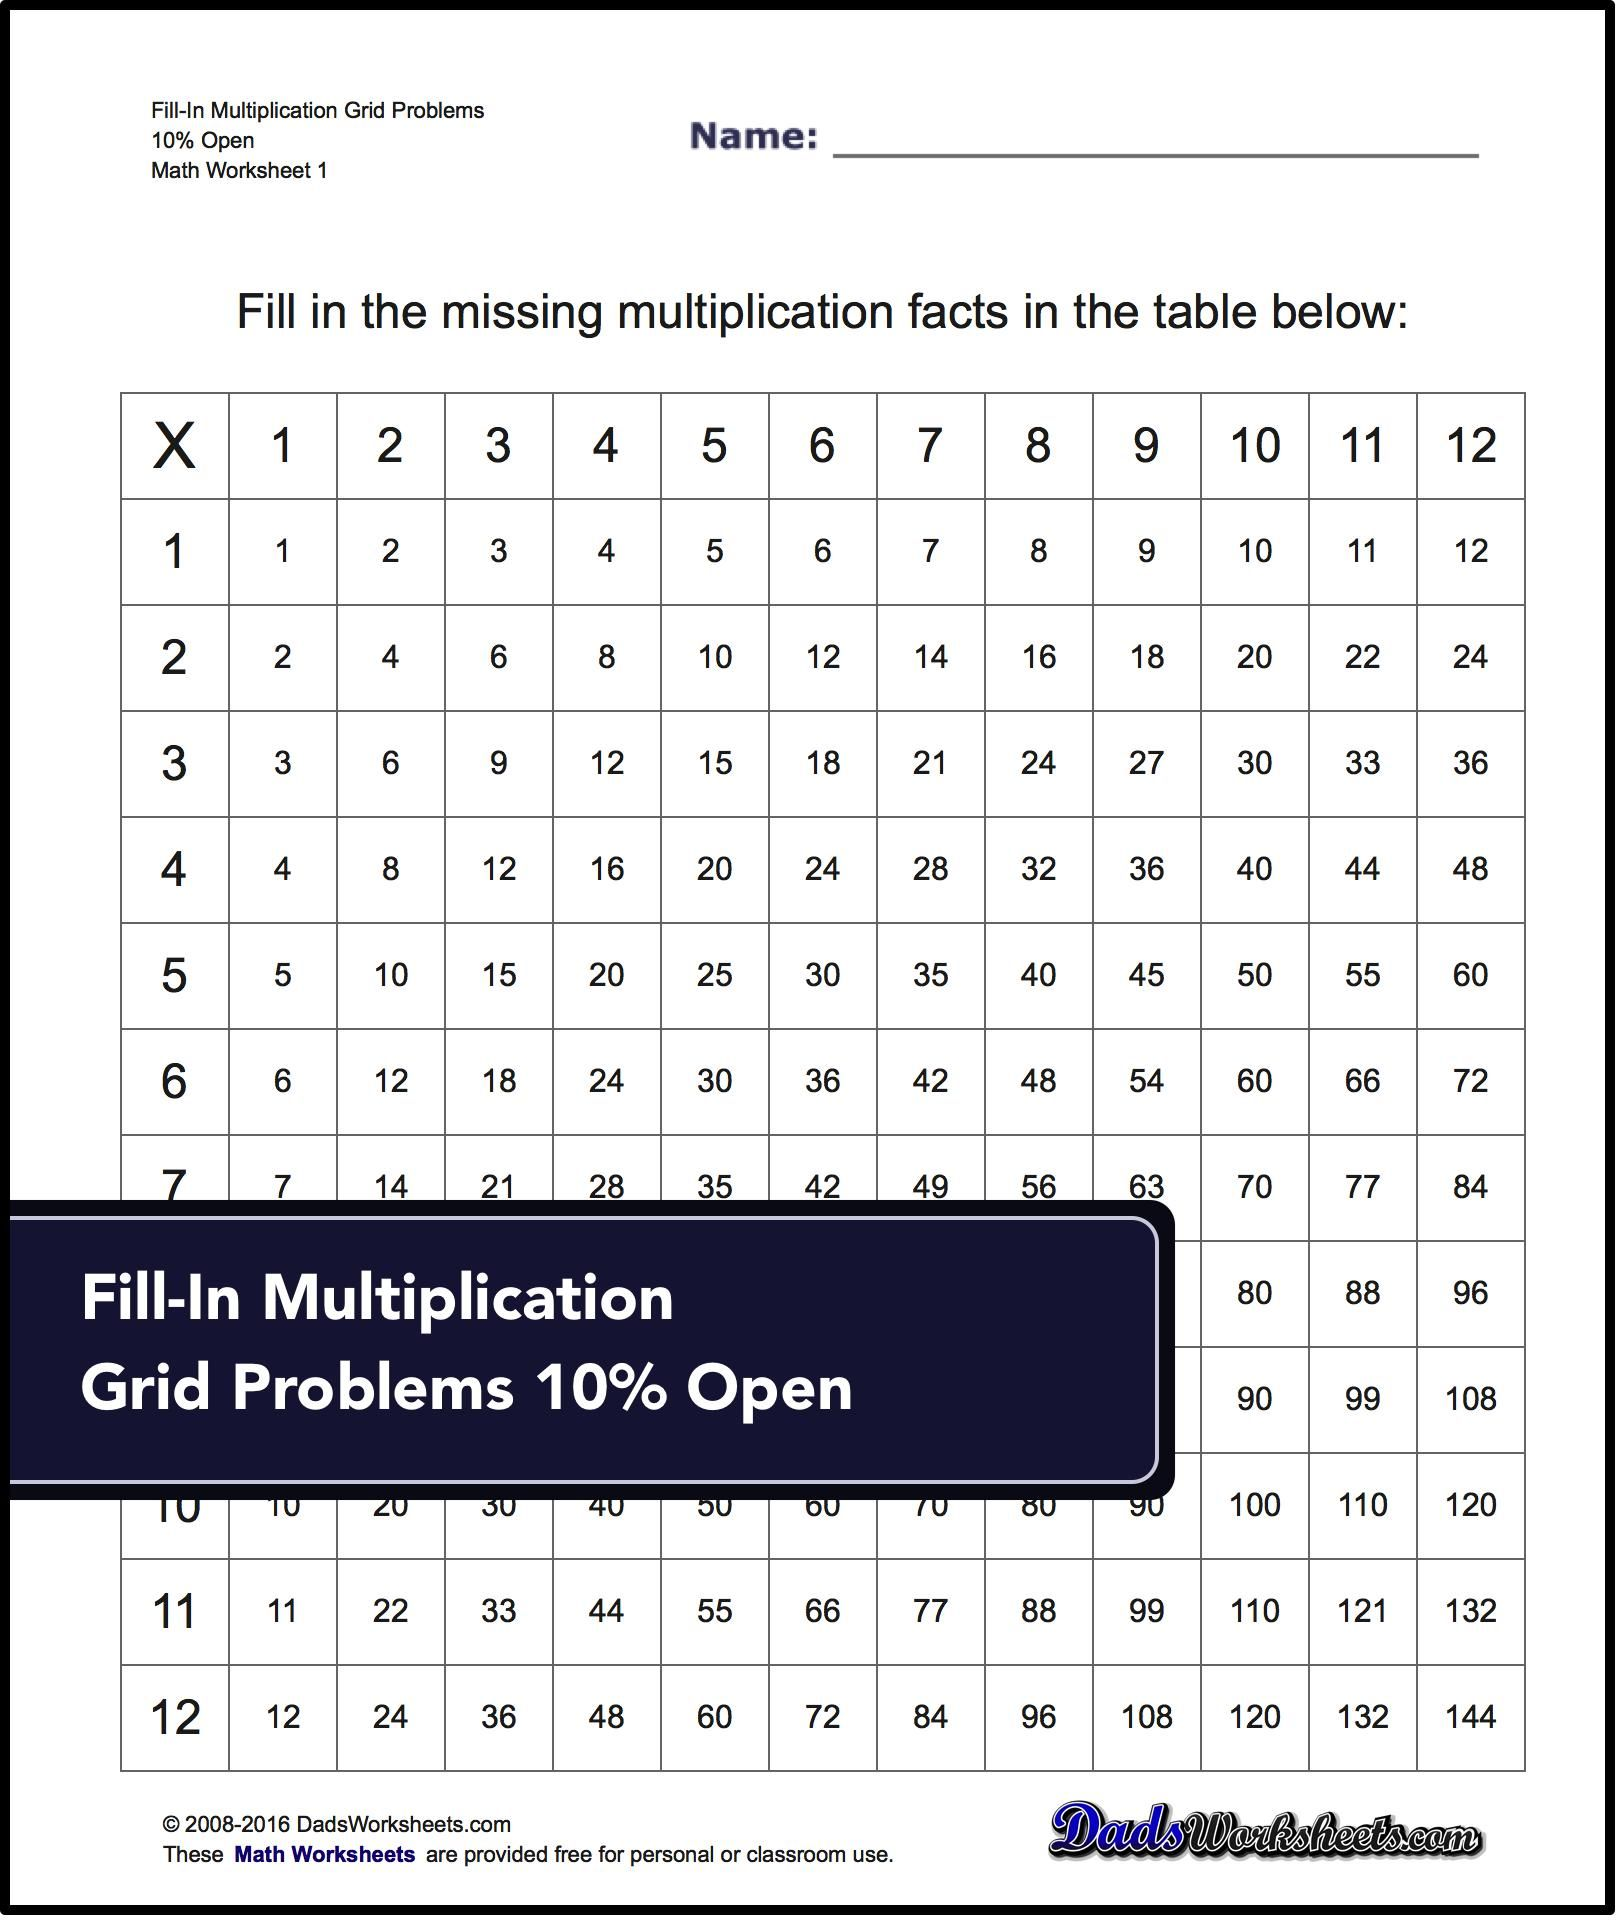 worksheet Multiplication Problems grid problem multiplication worksheets for introducing and discovering patterns in problems answer keys